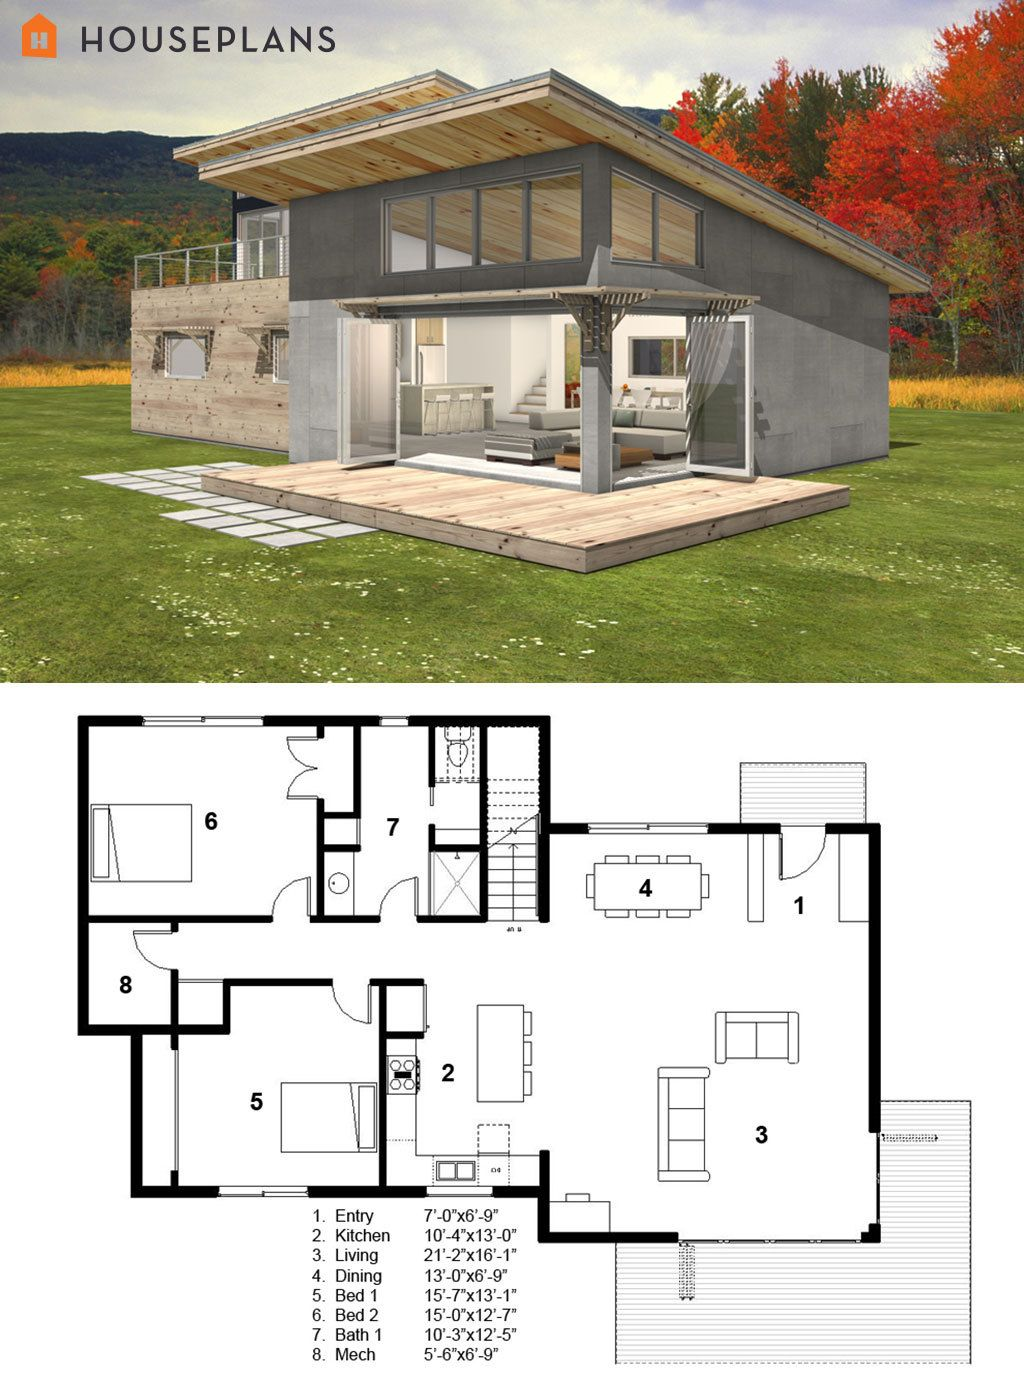 Modern style house plan 3 beds baths 2115 sq ft for Small contemporary house plans